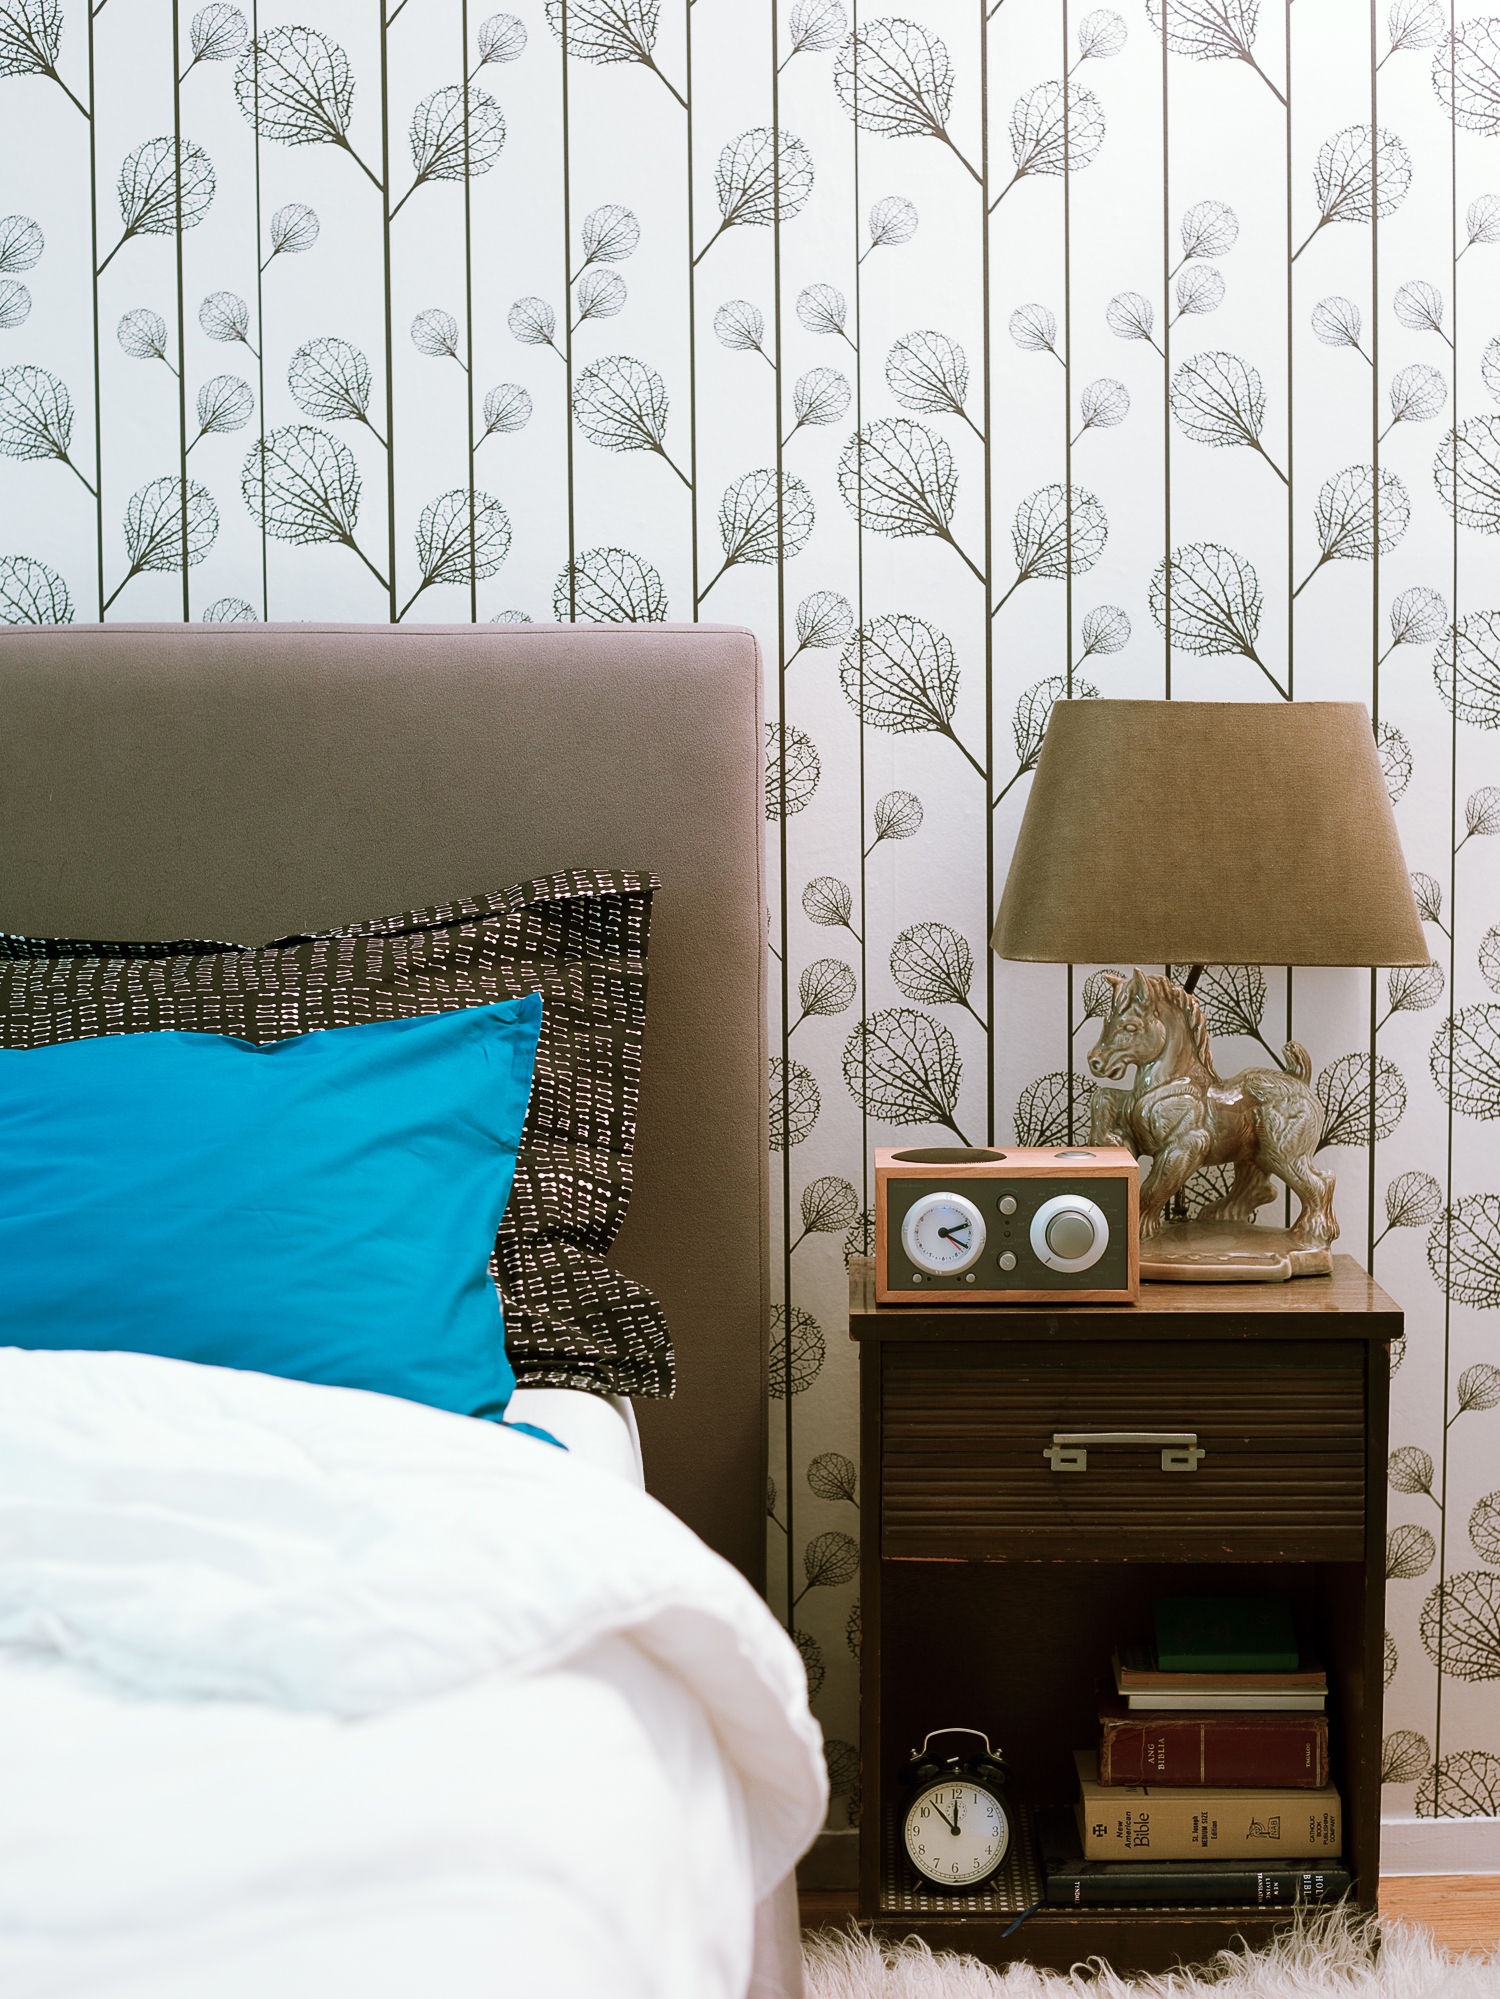 Creative Small Space Solutions. 20 Design Tips For Small Bedrooms